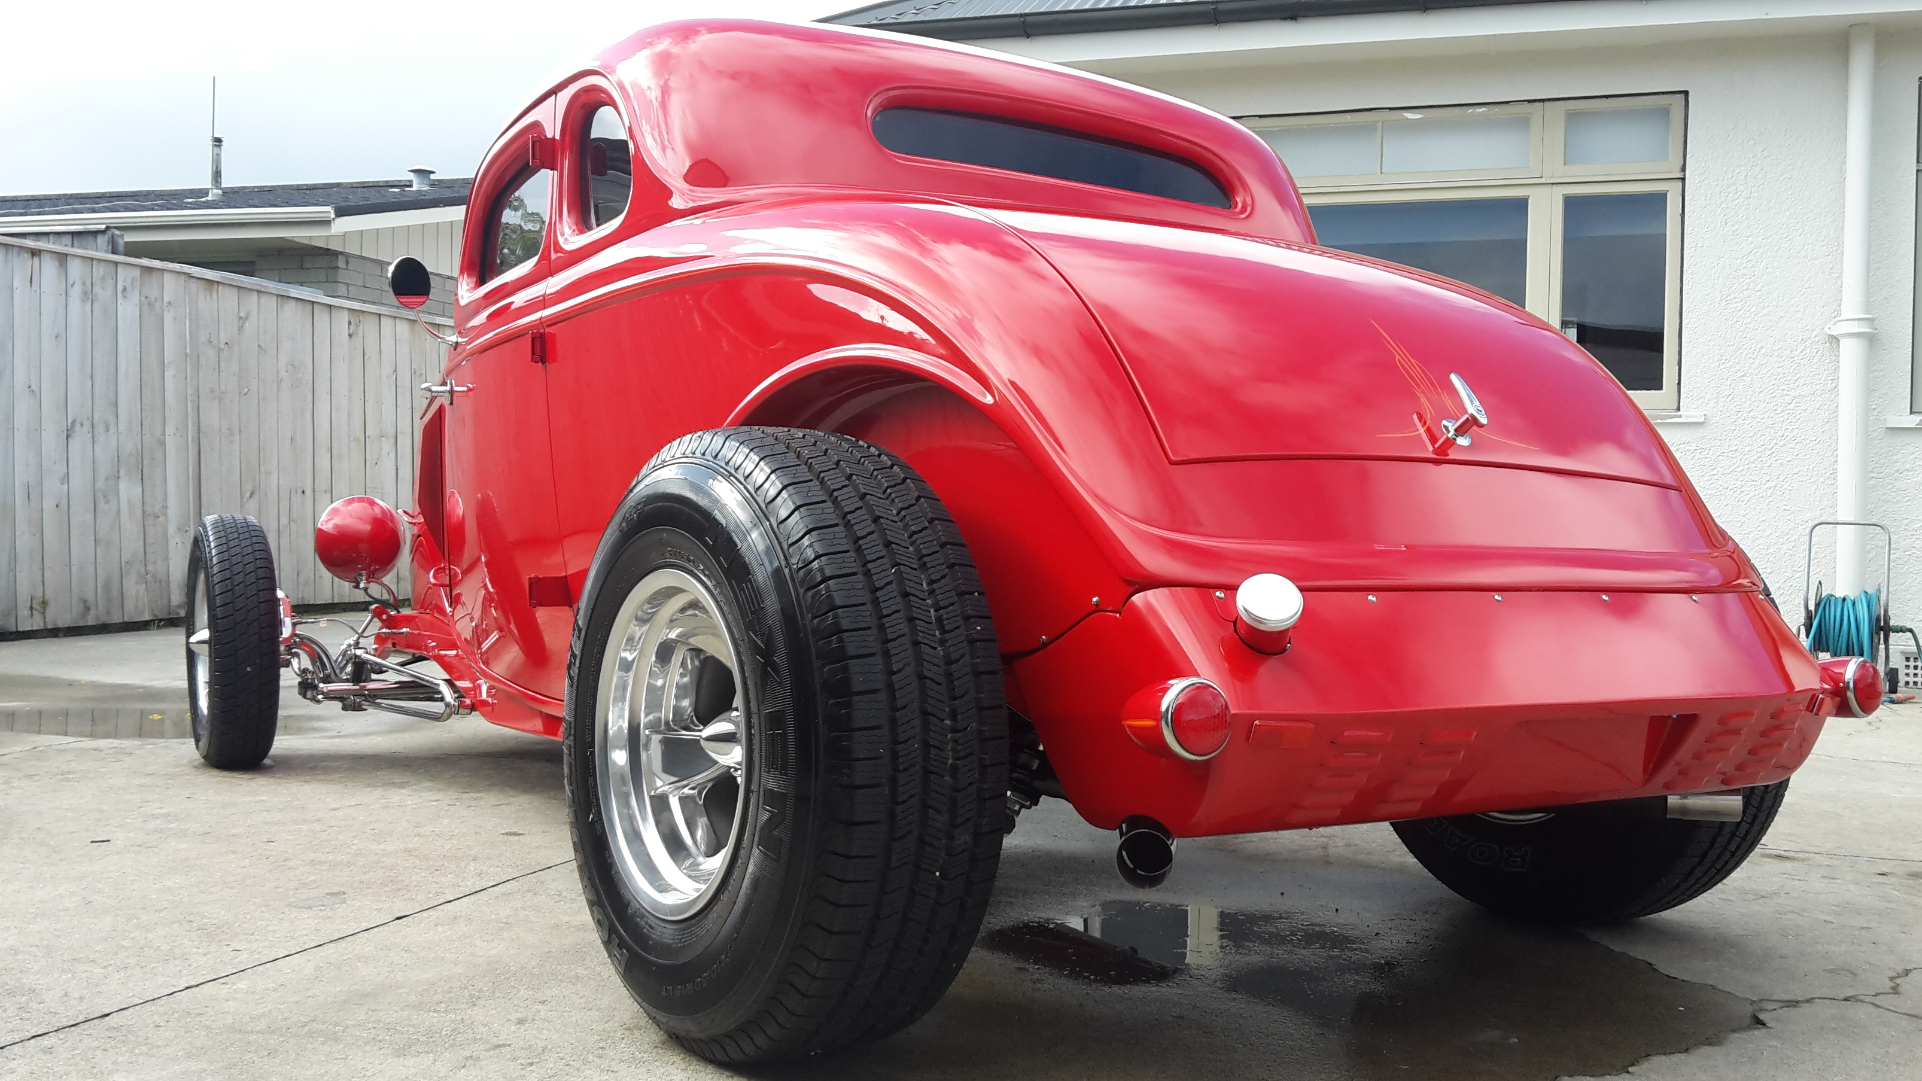 Rear view of a restored Hot Rod